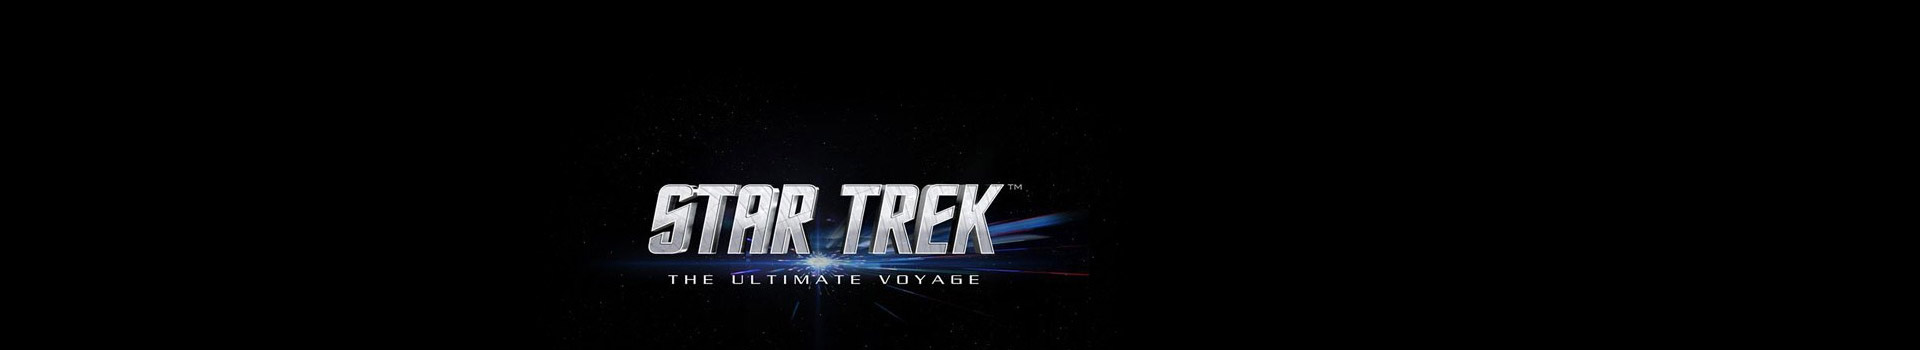 Star Trek Ultimate Voyage tickets at the Royal Albert Hall